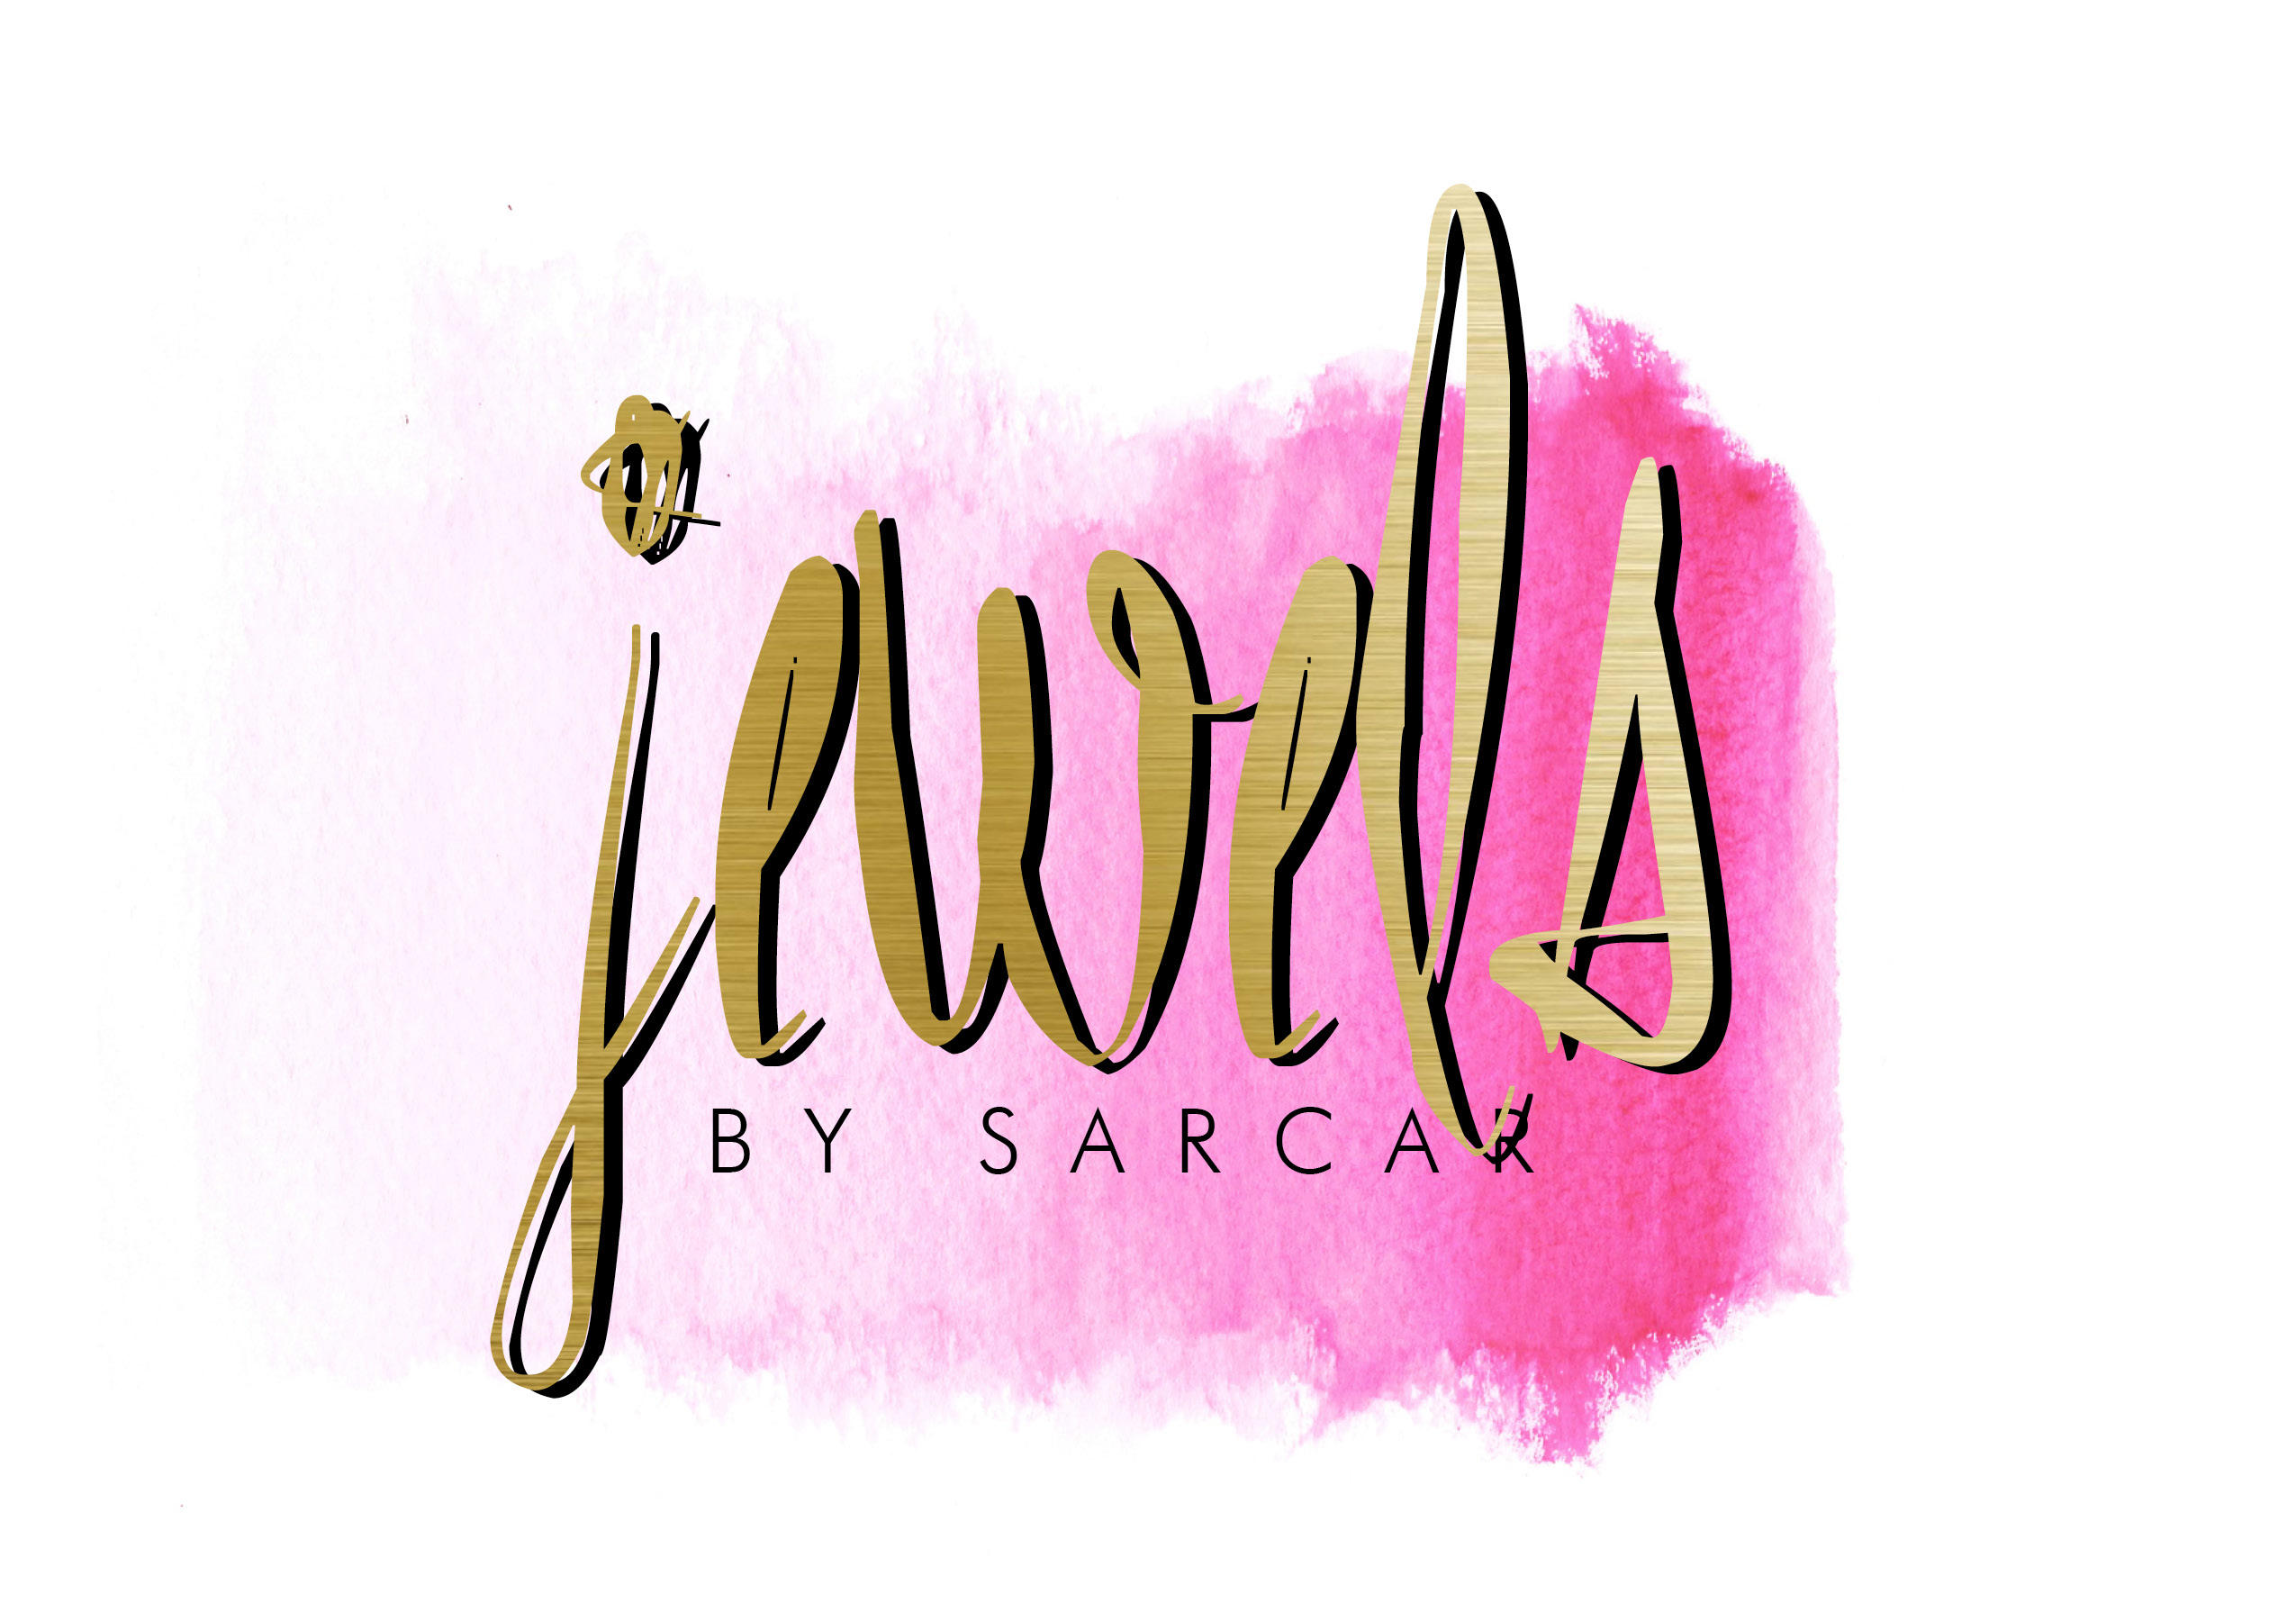 jewels by sarcar FINAL